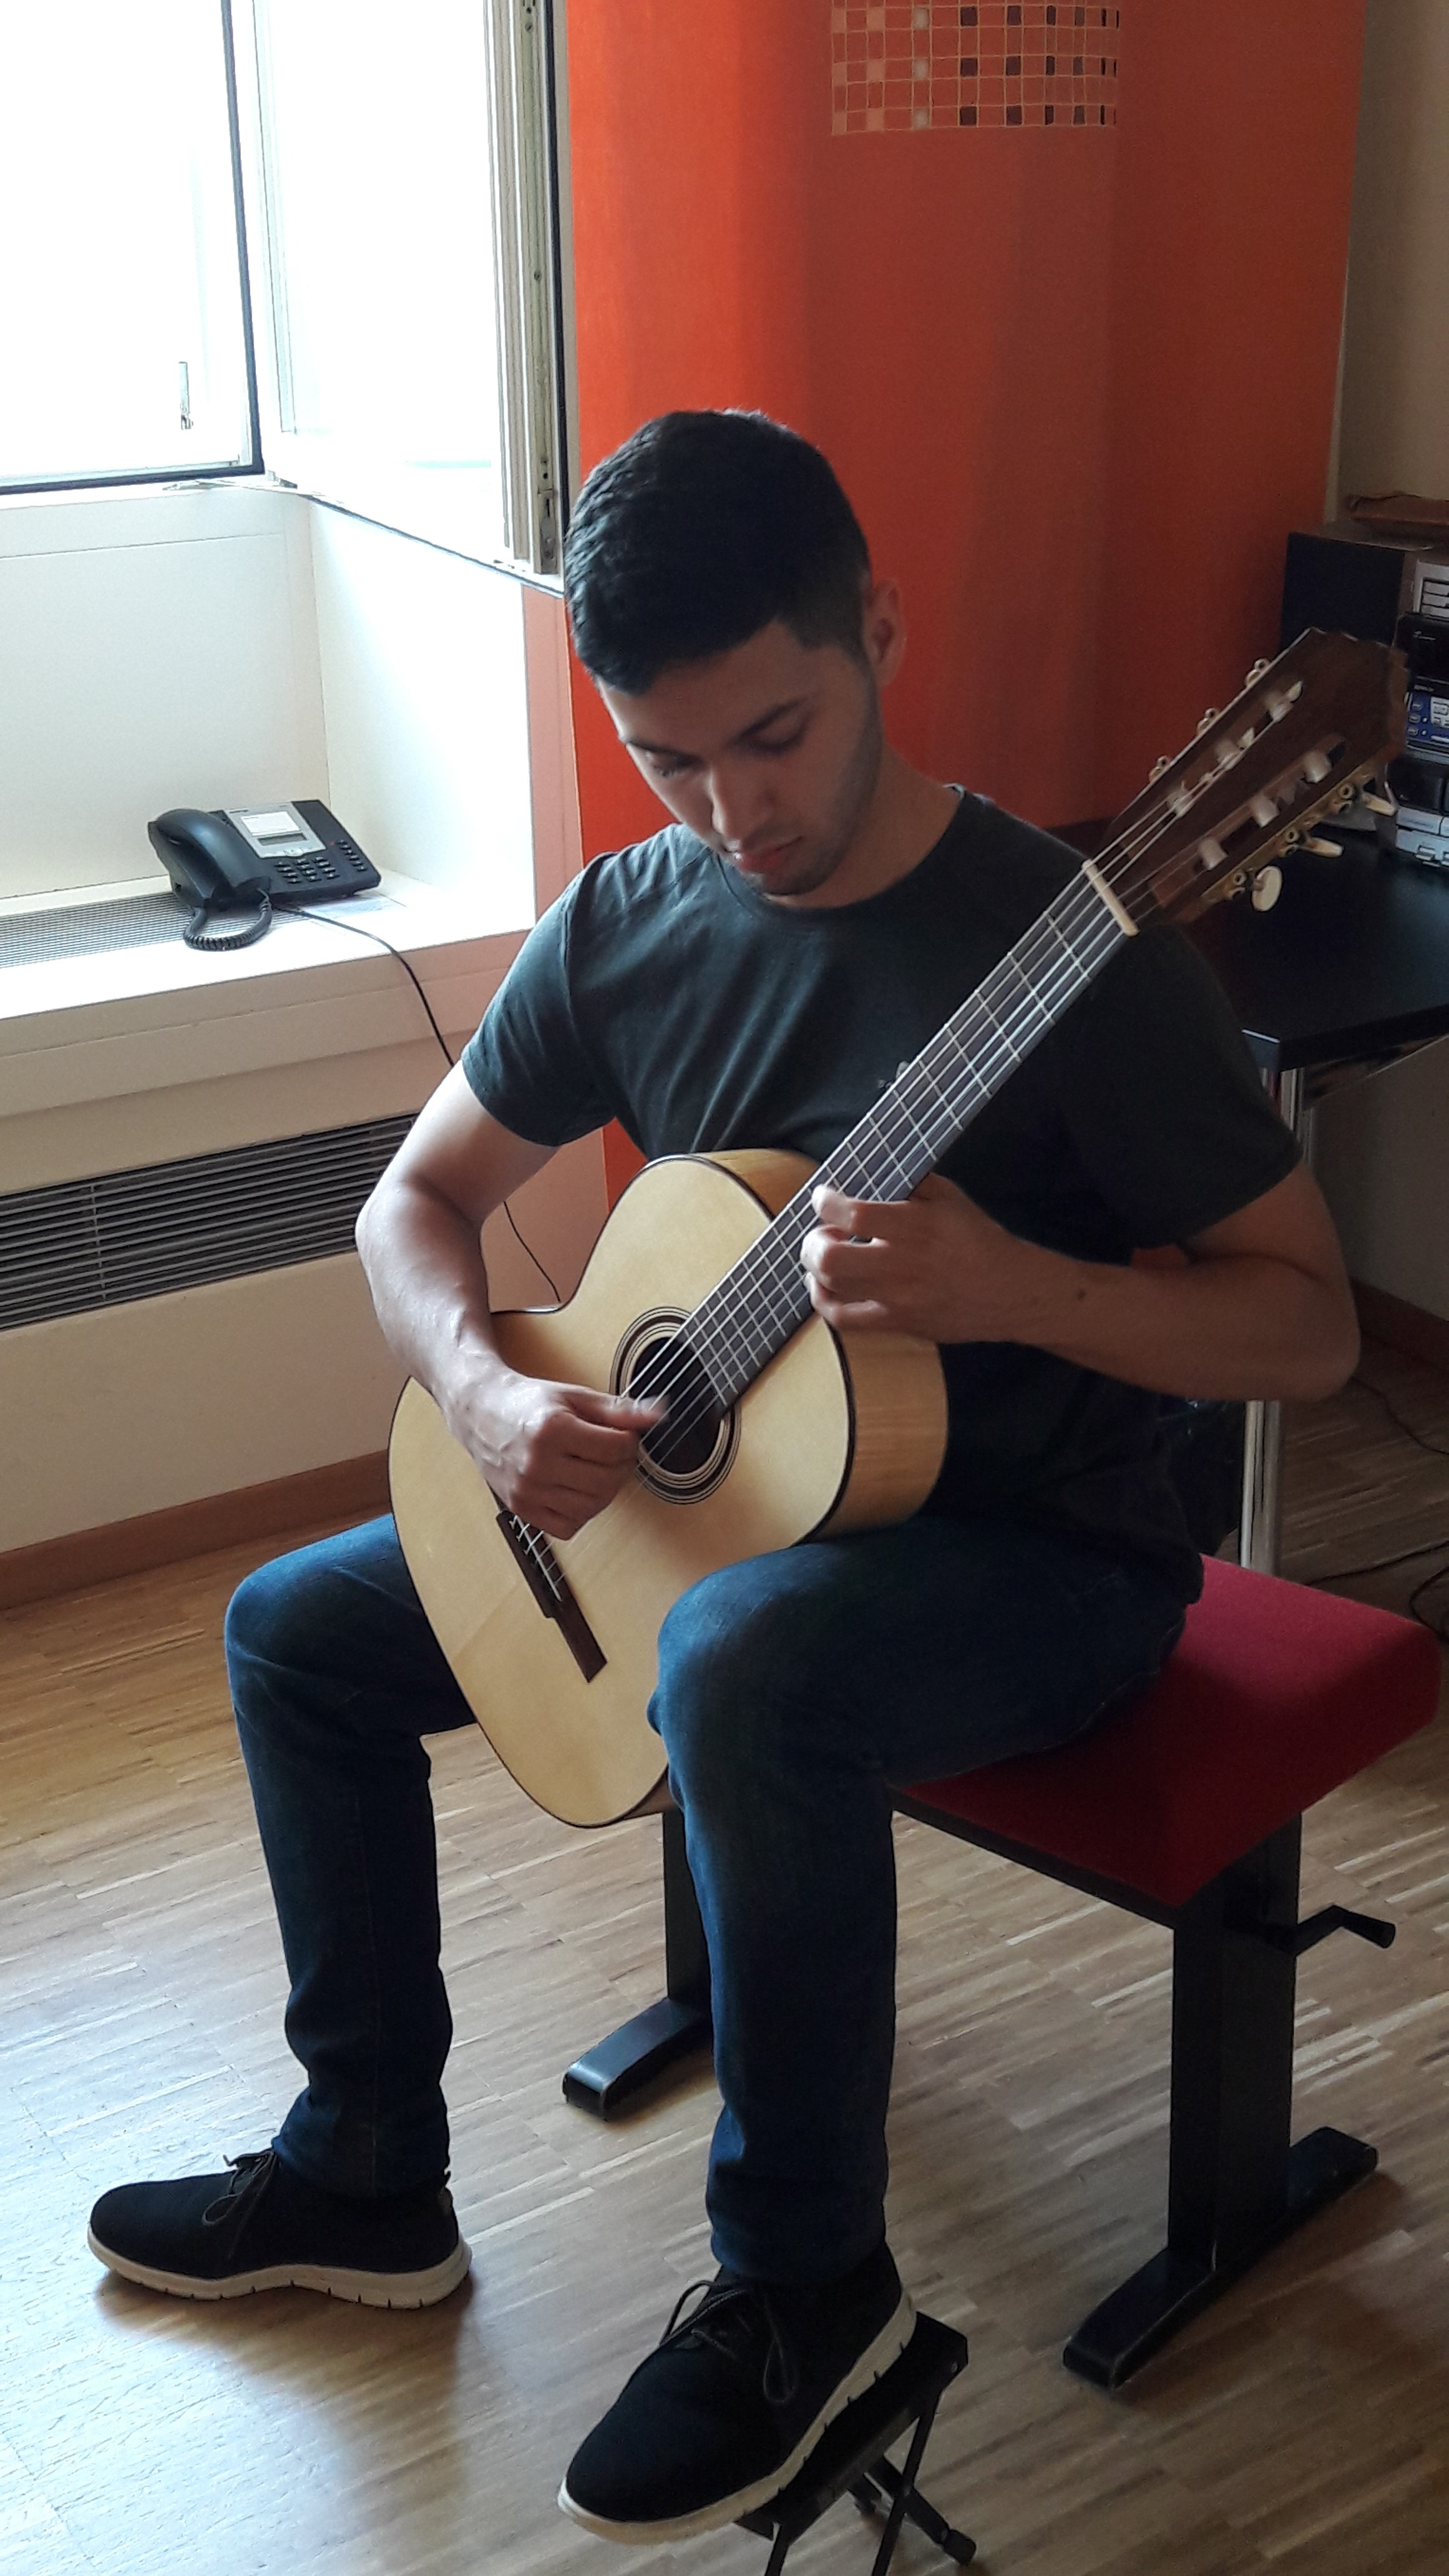 Alexander Vergara with Den Toom Luthier guitar in maple back and sides